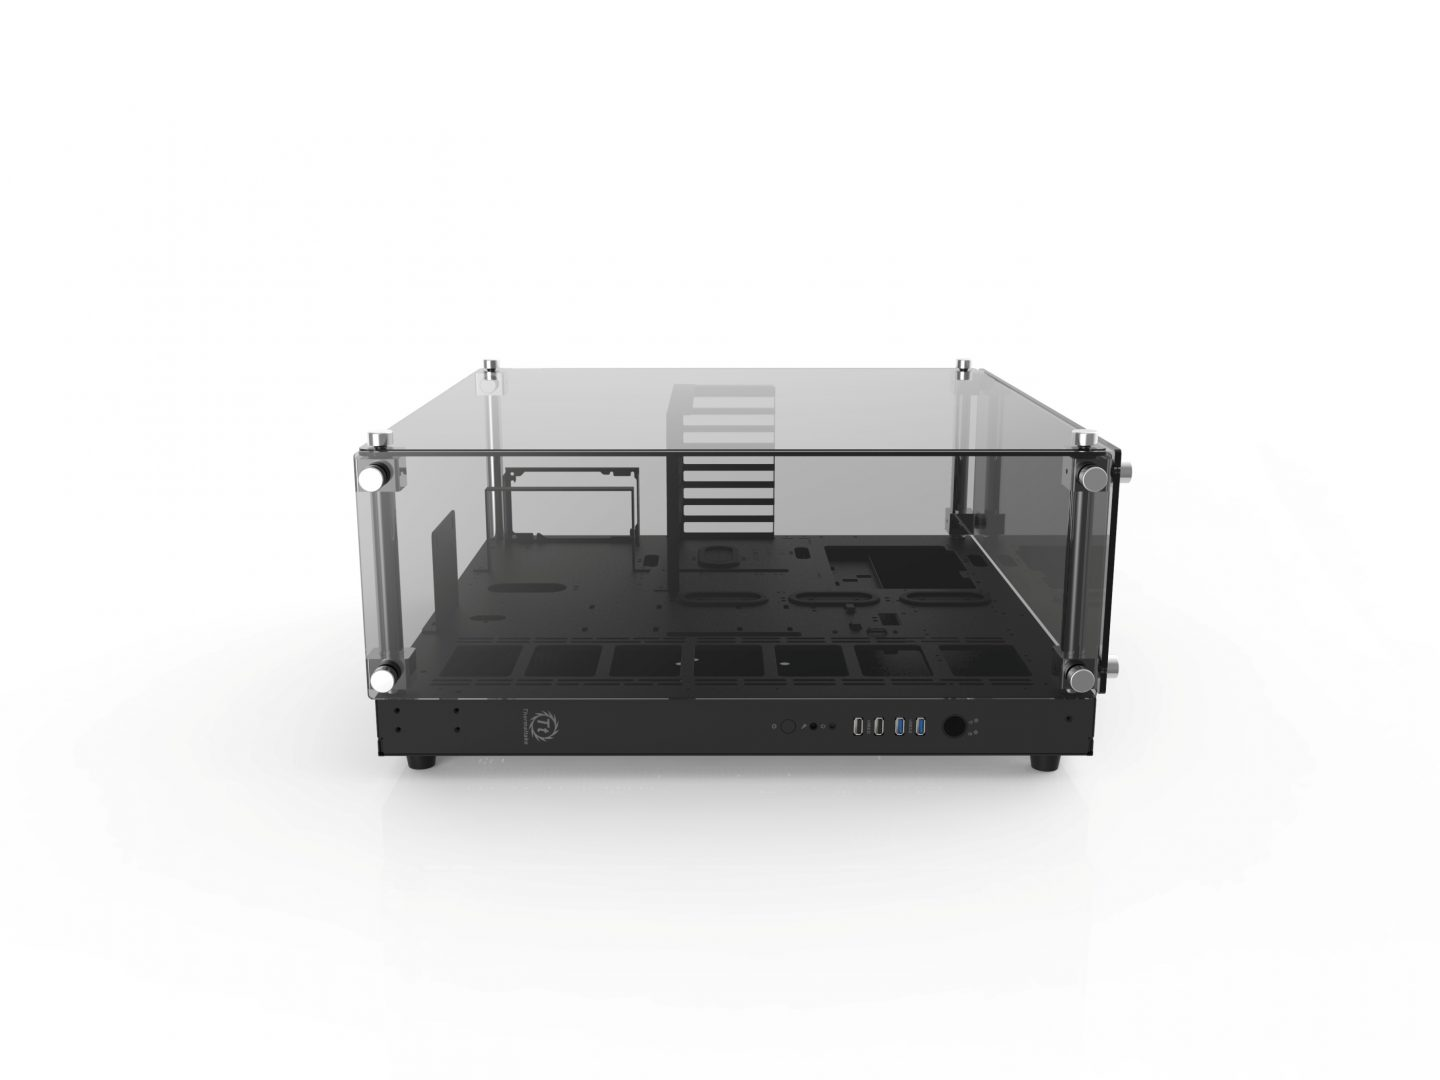 thermaltake-core-p5-tempered-glass-edition-atx-wall-mount-chassis-3-way-placement-layout